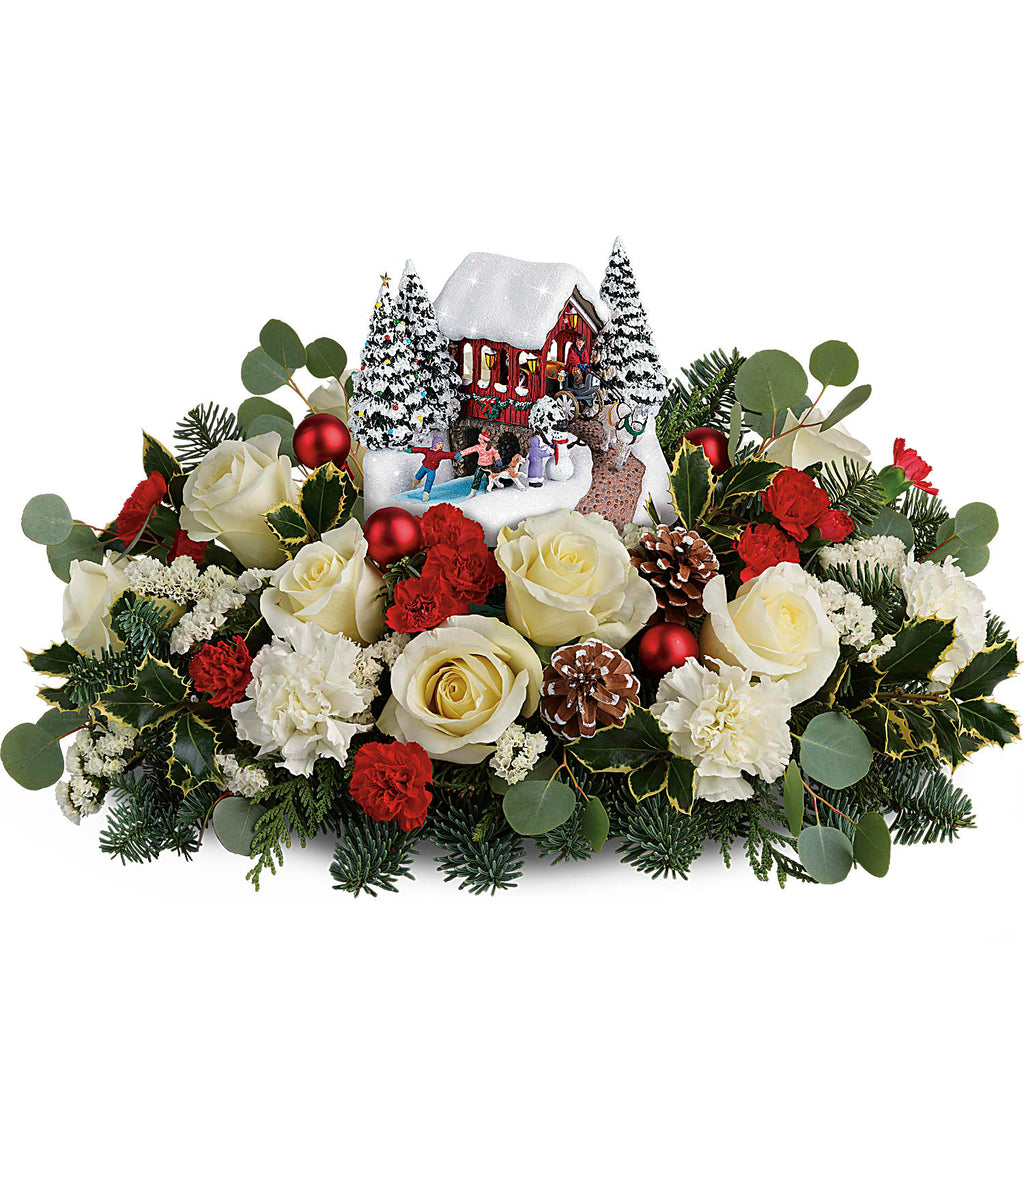 Thomas Kinkade's Christmas Bridge Bouquet